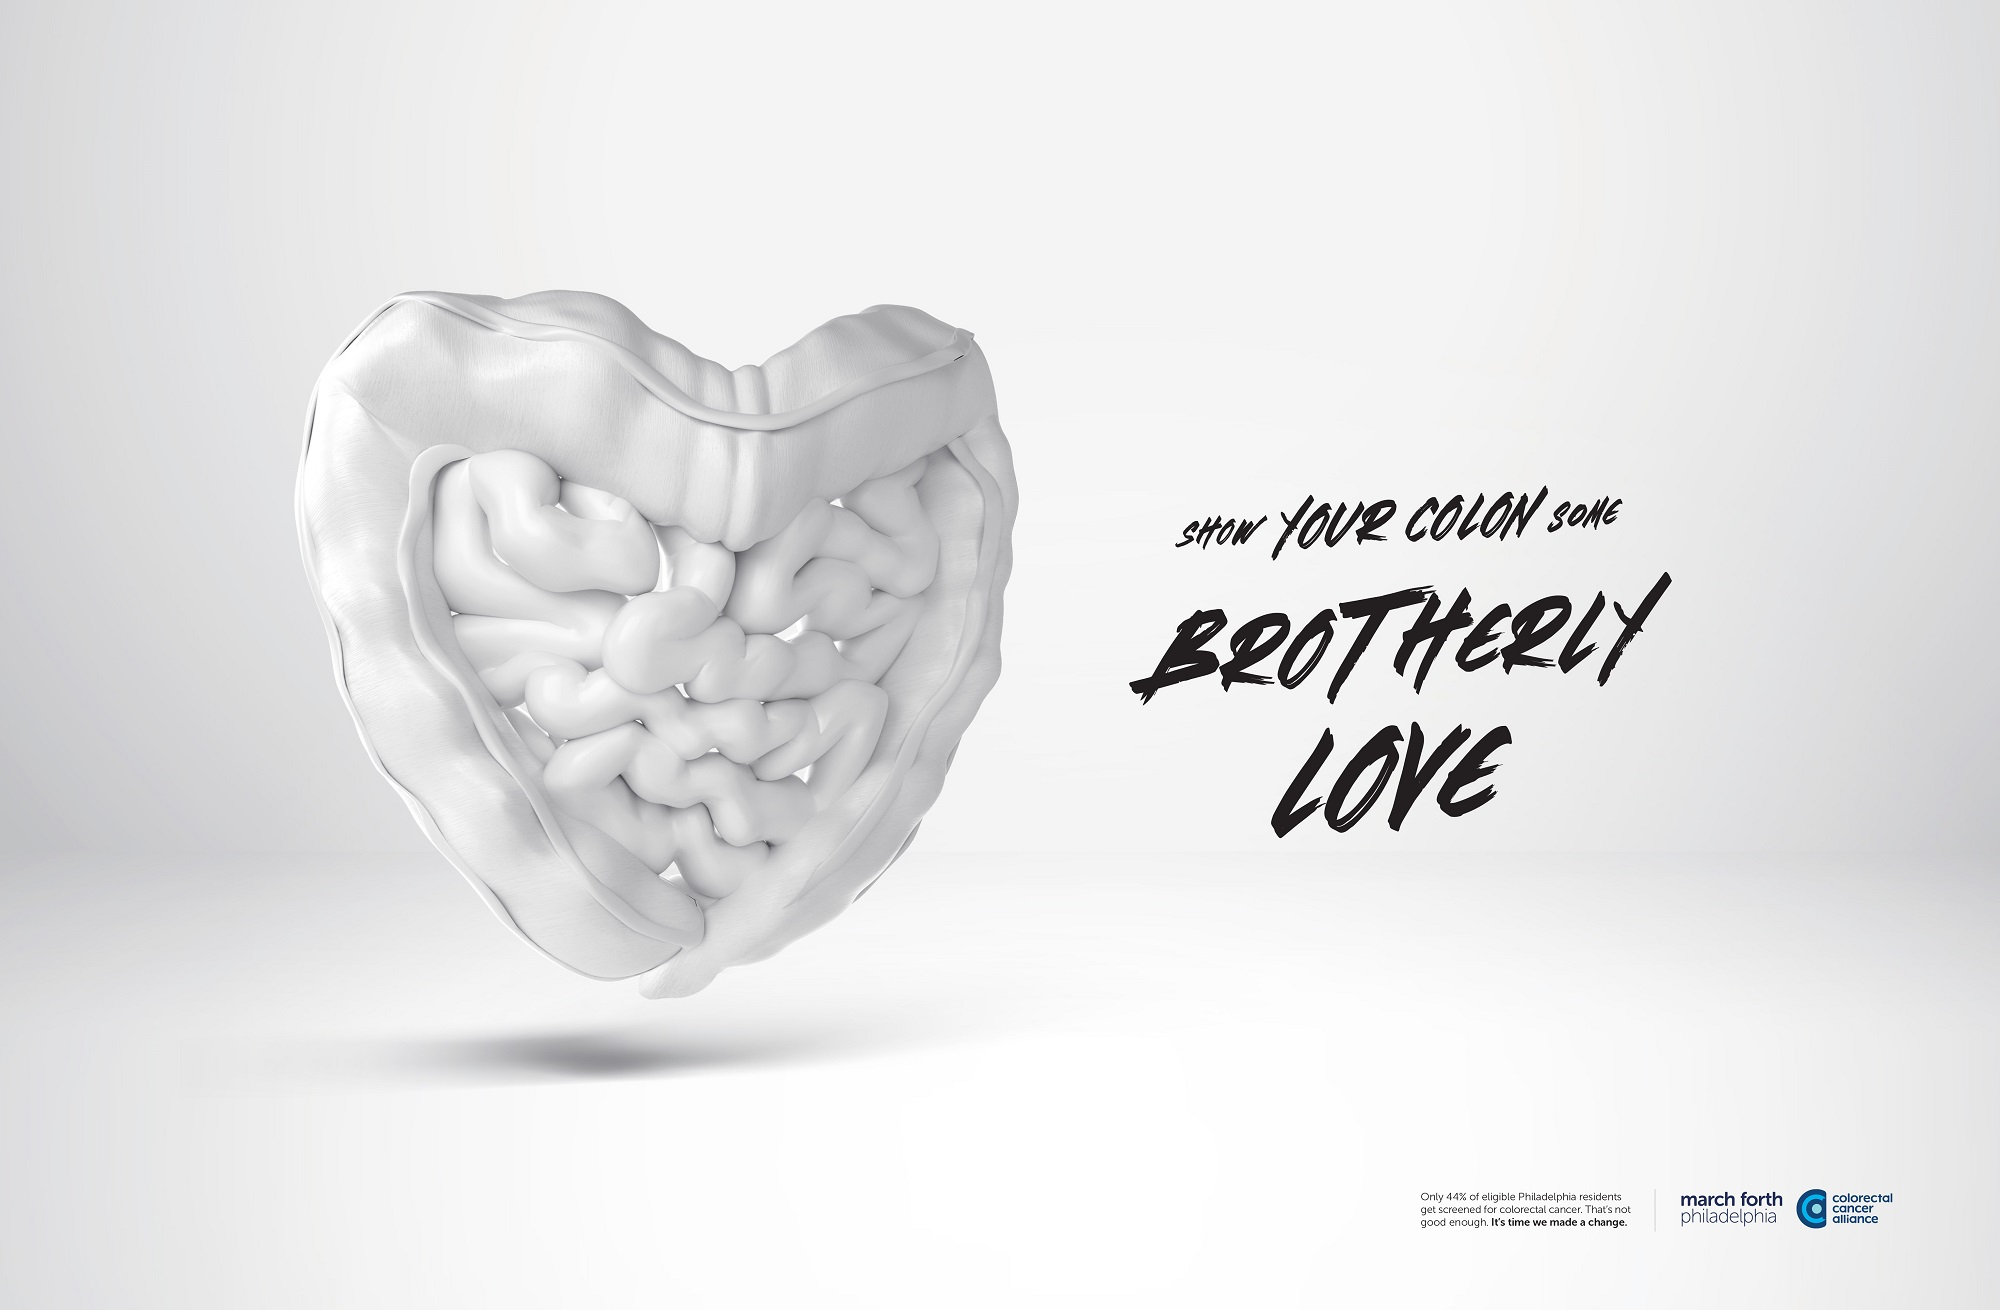 Colorectal Cancer Alliance Show Your Colon Some Brotherly Love Adsofbrands Net